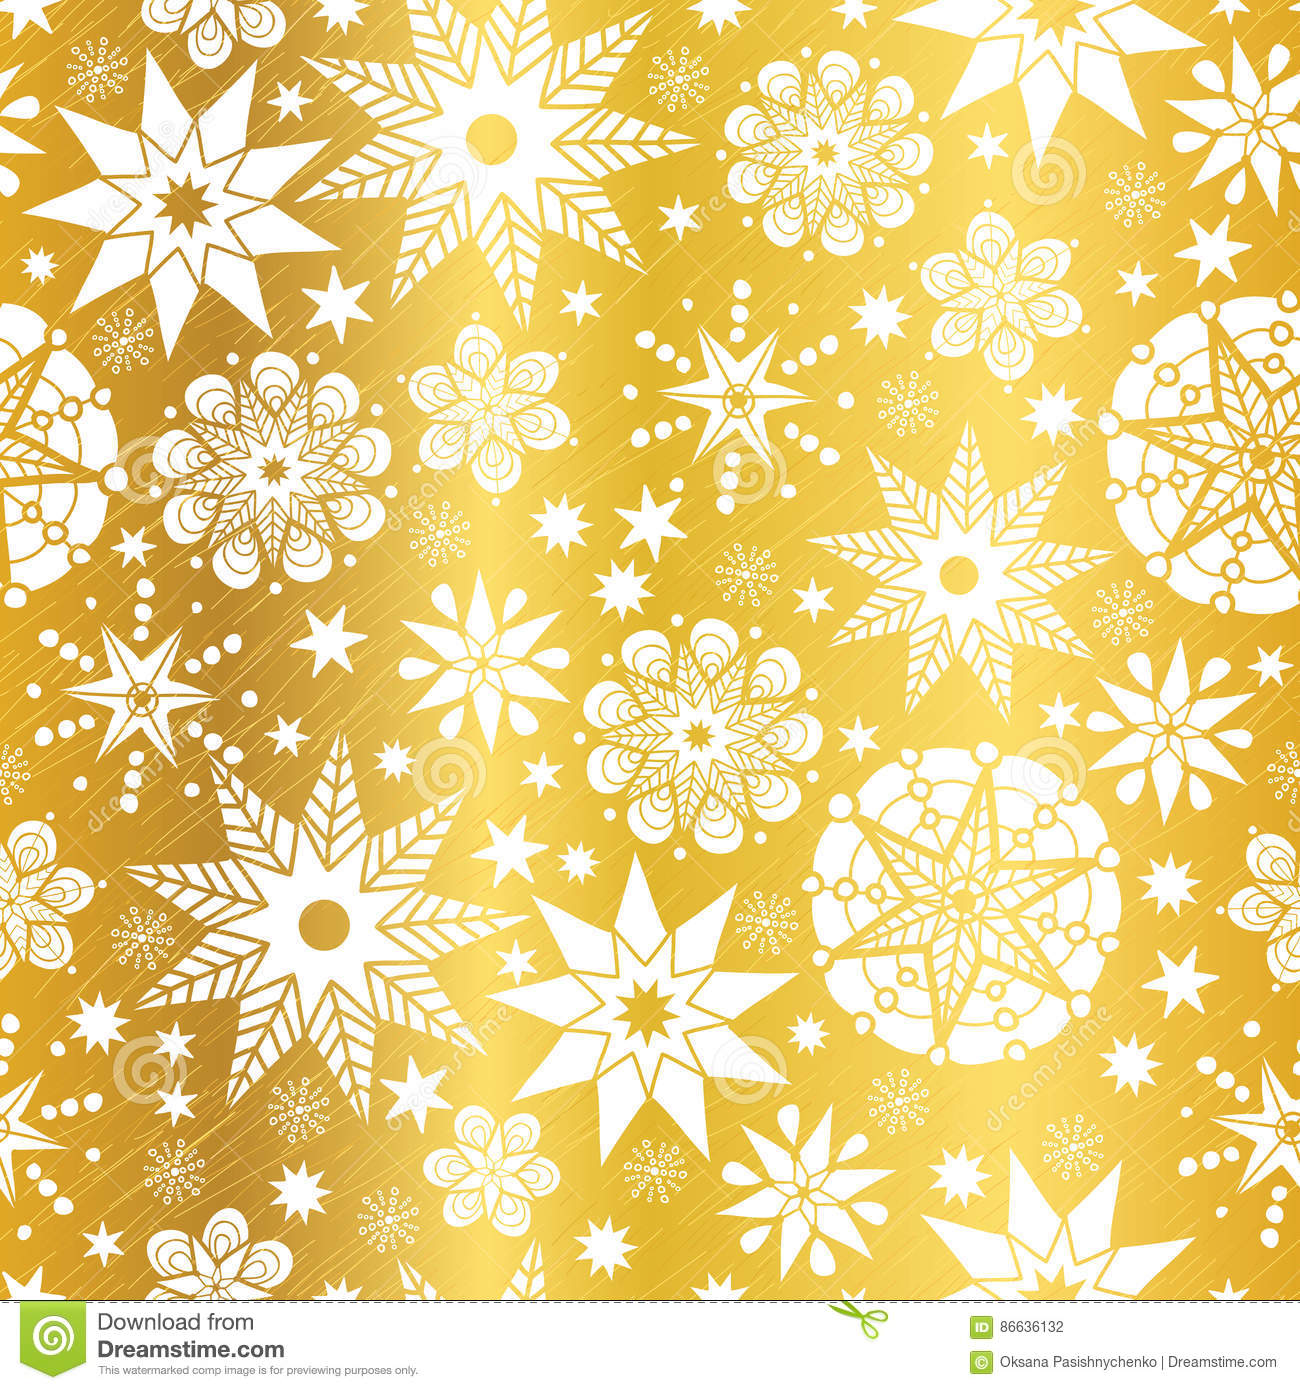 Snowflake PNG Images  Vectors and PSD Files  Free